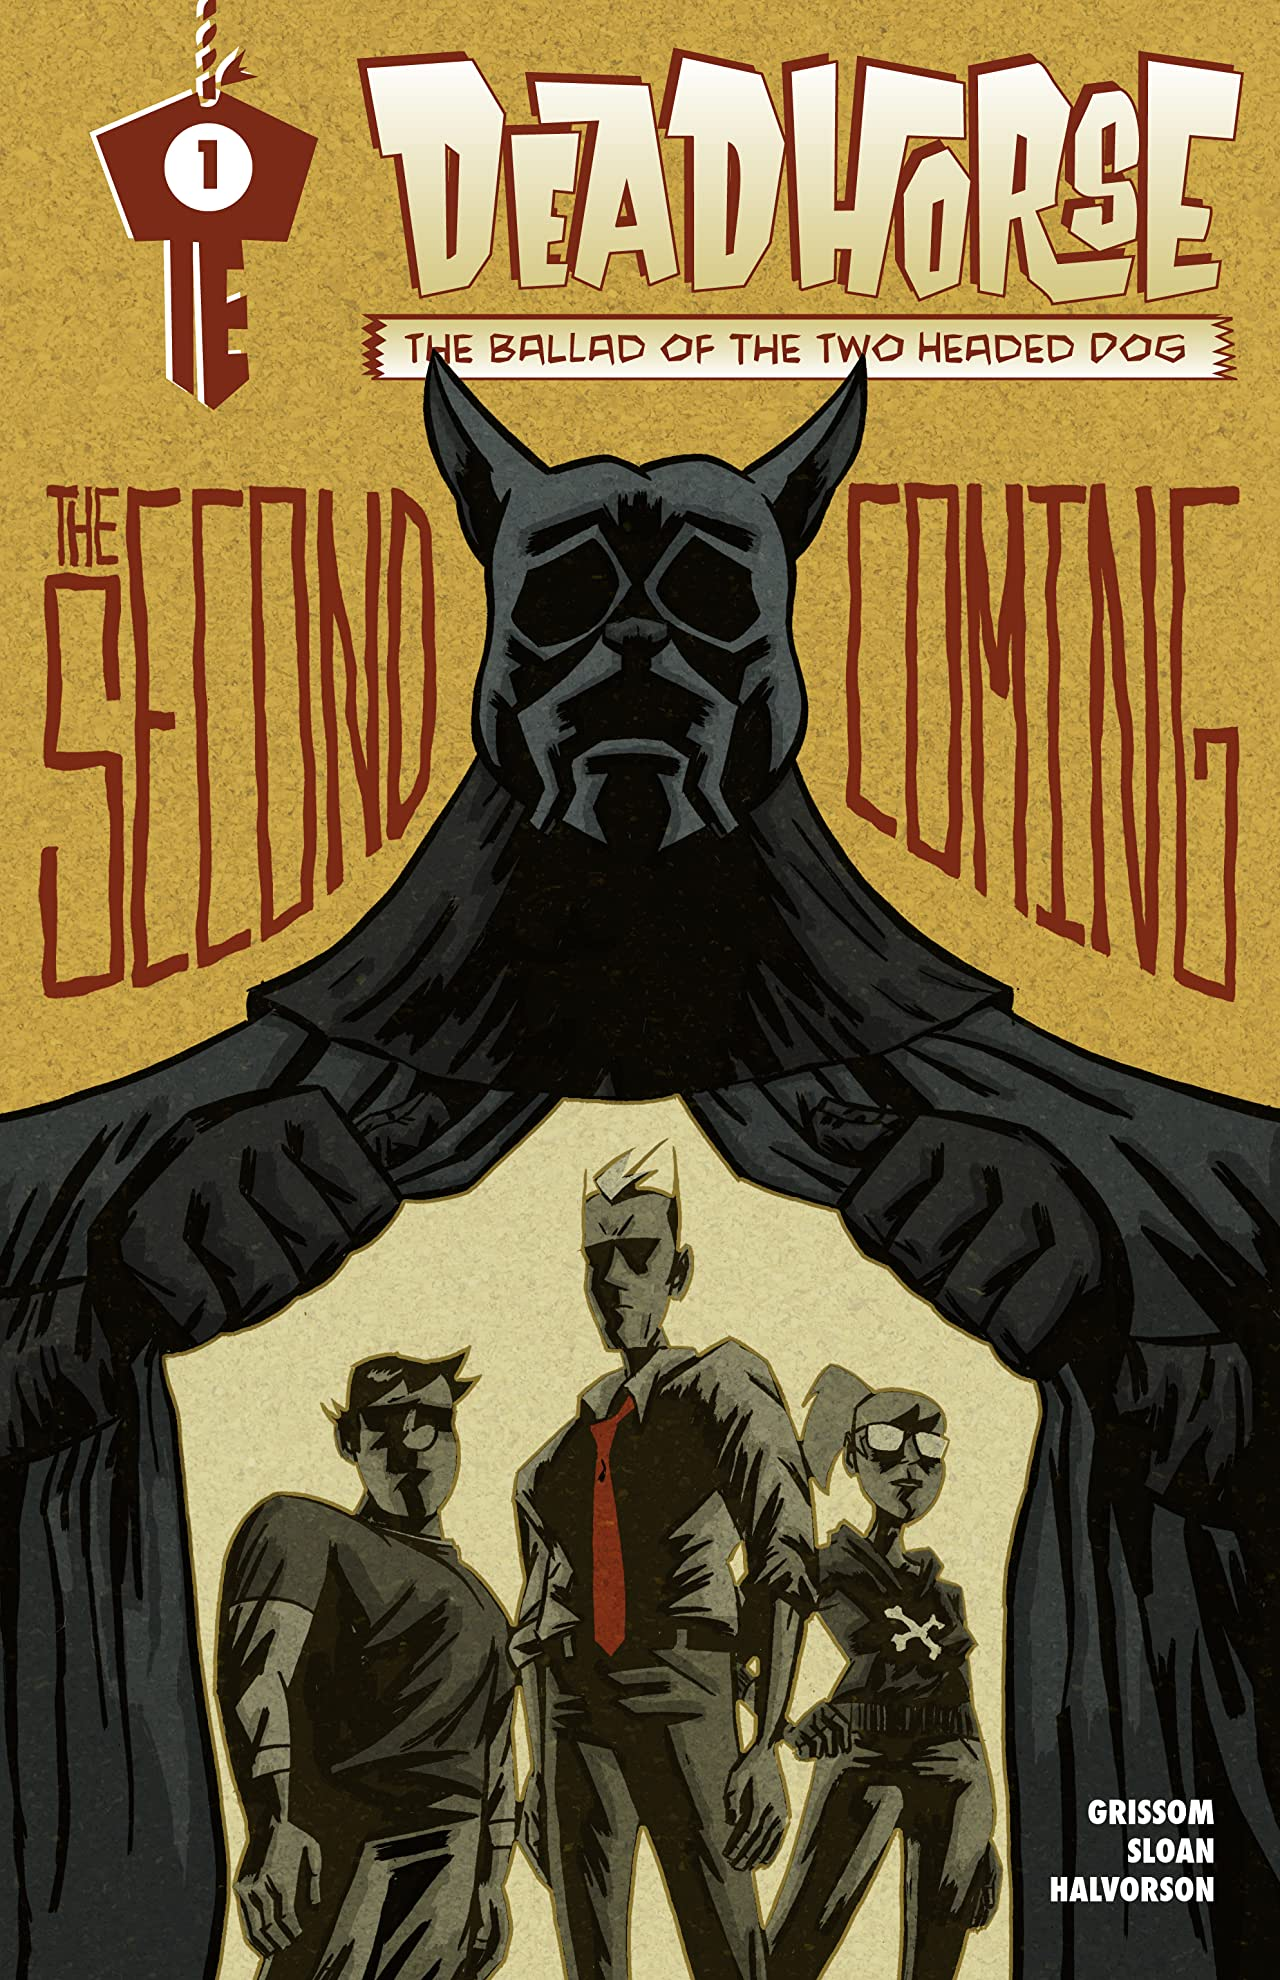 Deadhorse: Ballad of the Two Headed Dog #1